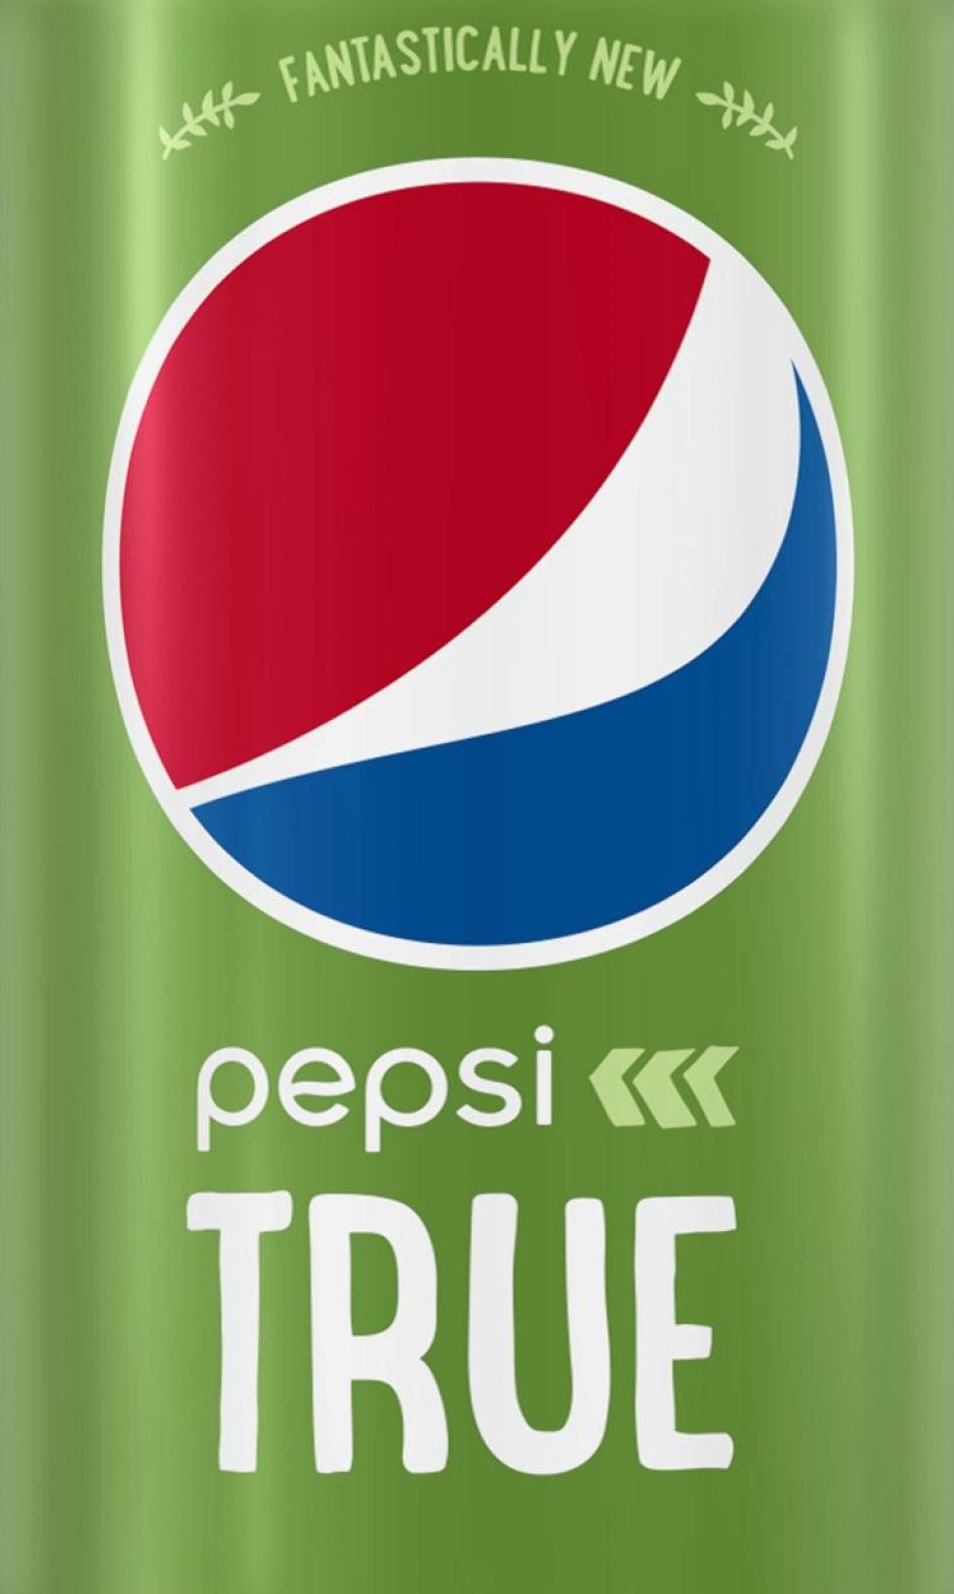 subsidiaries of pepsico Pepsico's major subsidiaries were the pepsi-cola company, which was the world's largest manufacturer and distributor of snack chips, and tropicana.